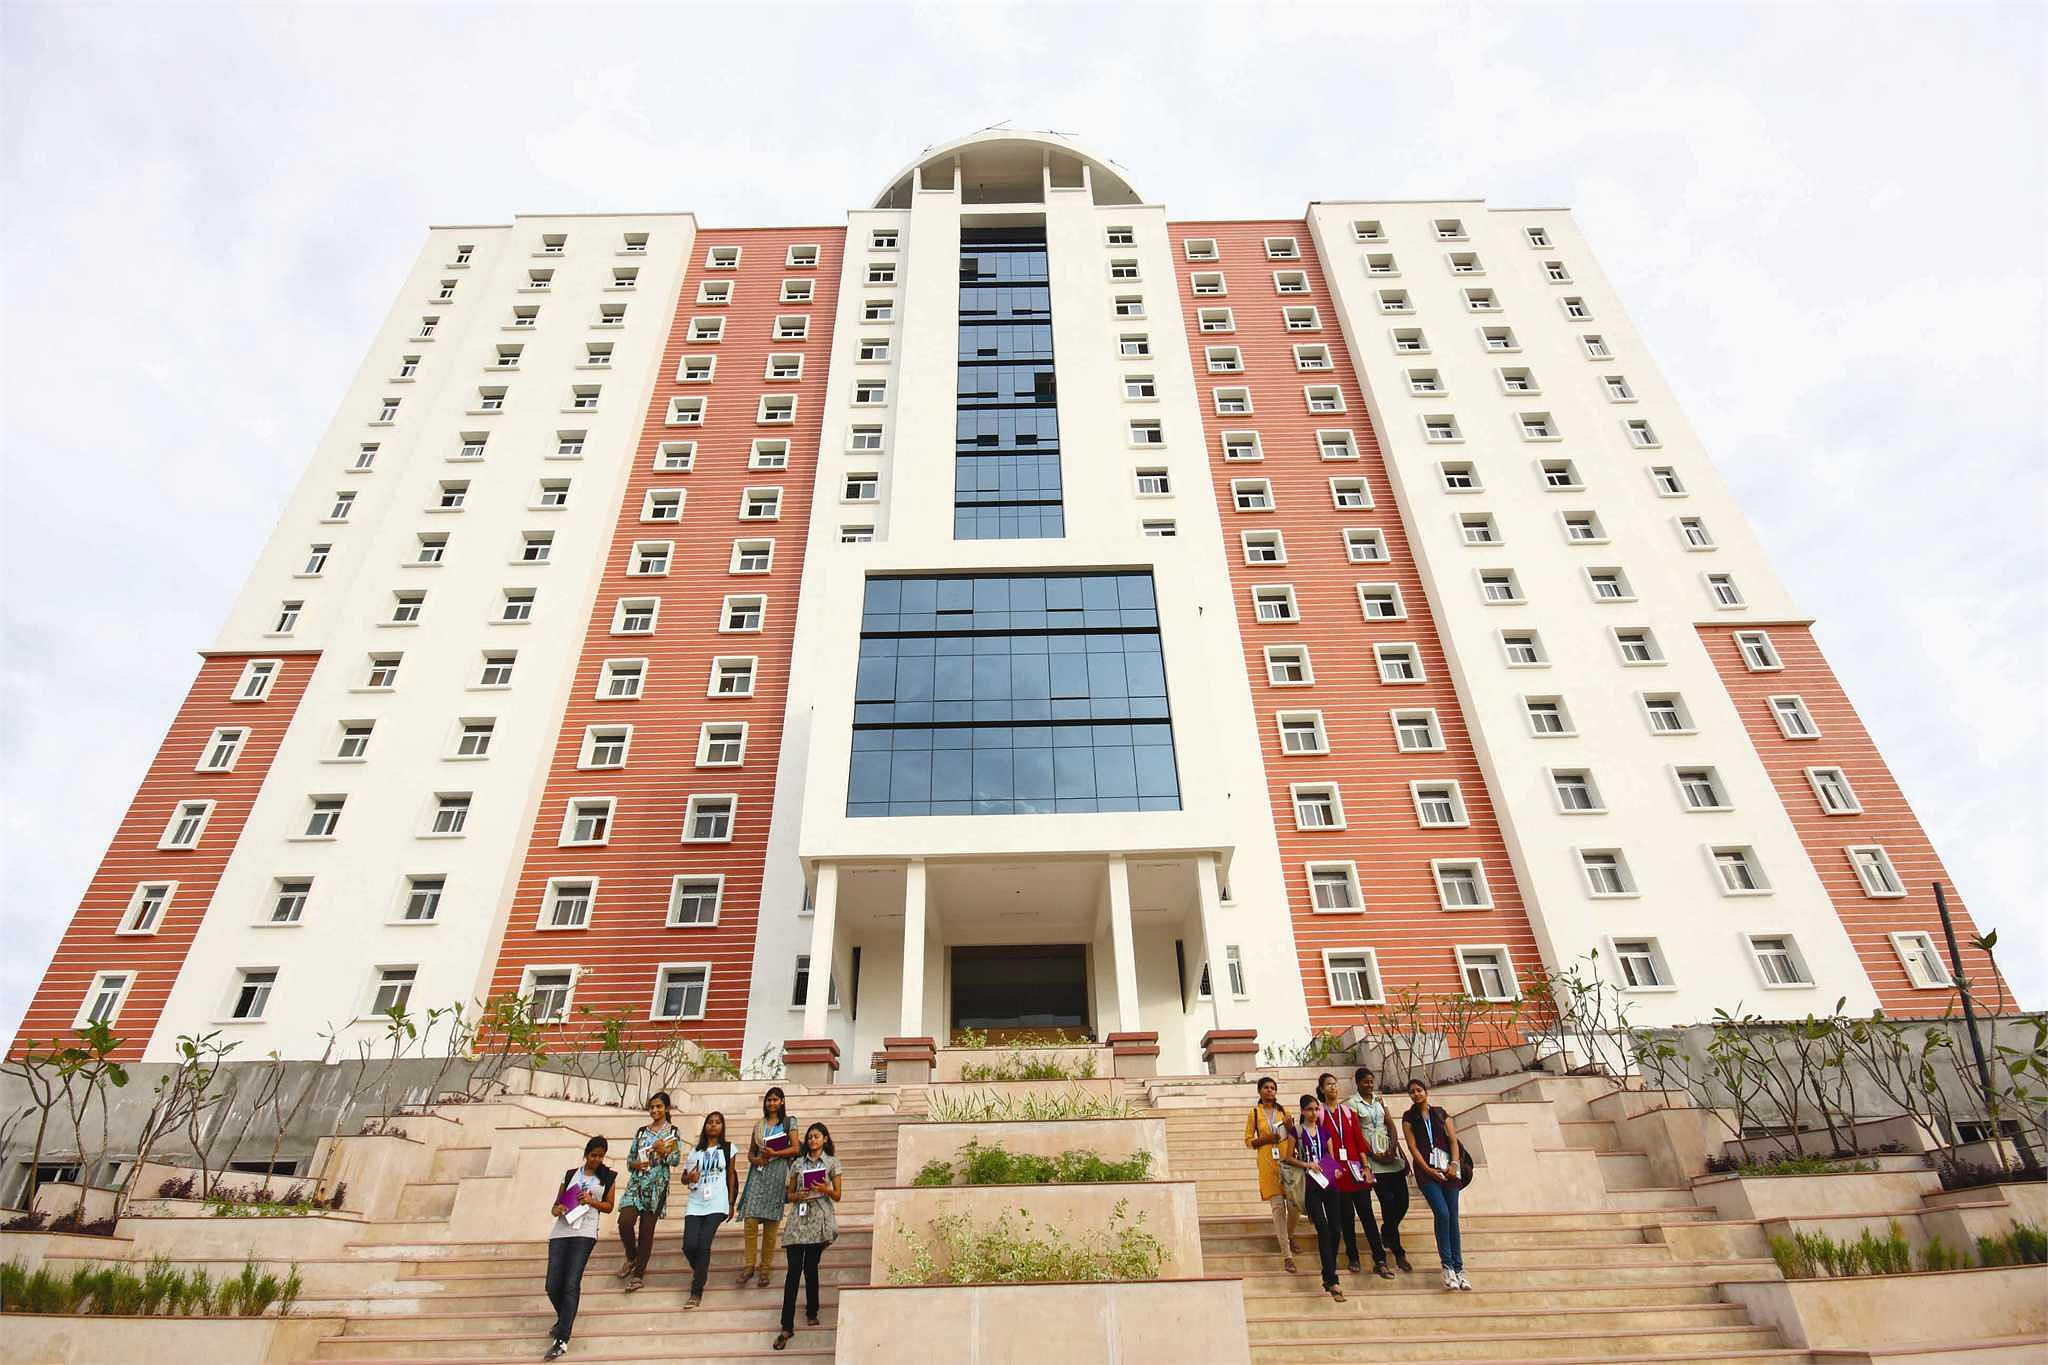 Vit Chennai Admission, Courses And Fees Structure-5272